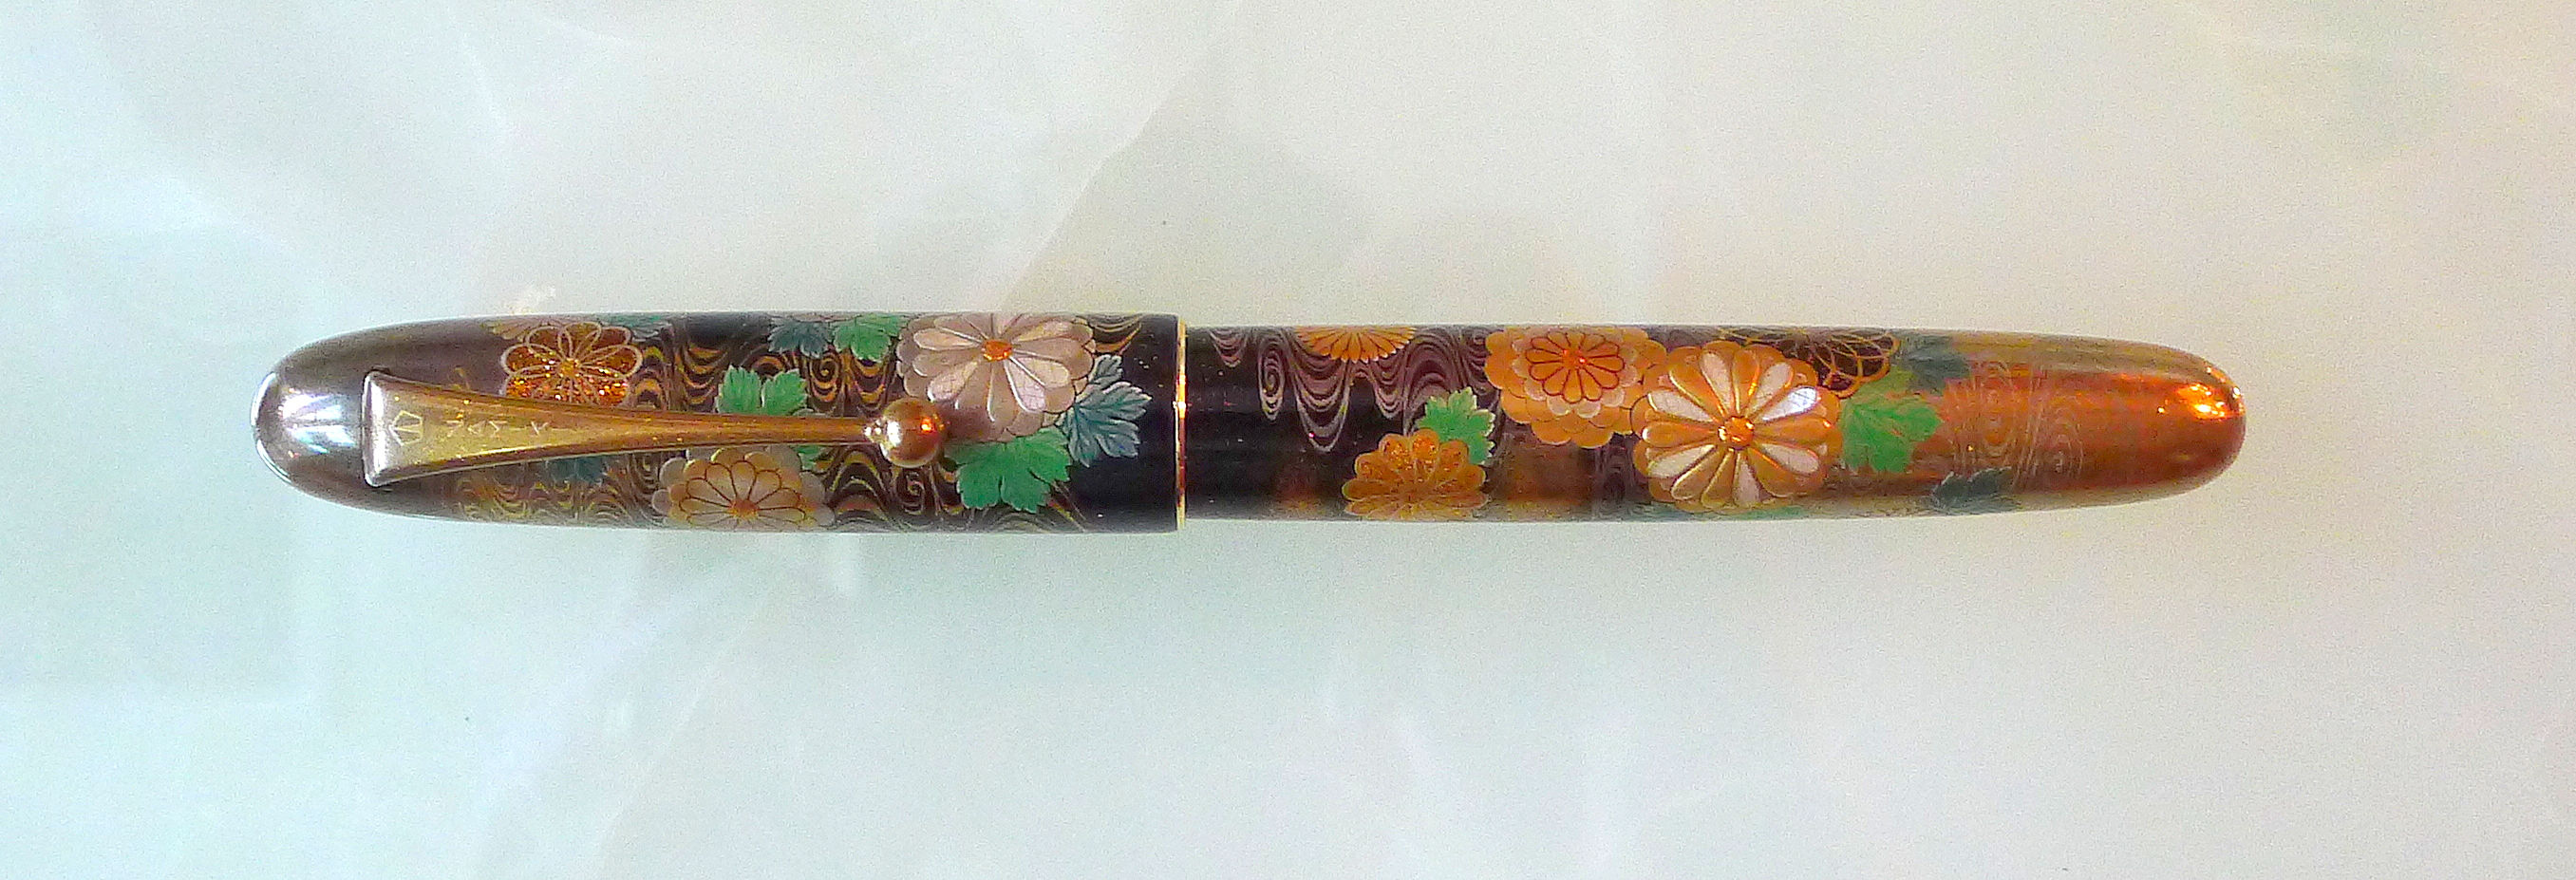 Close view of Yukari Royal Chrysanthemum Flowers fountain pen